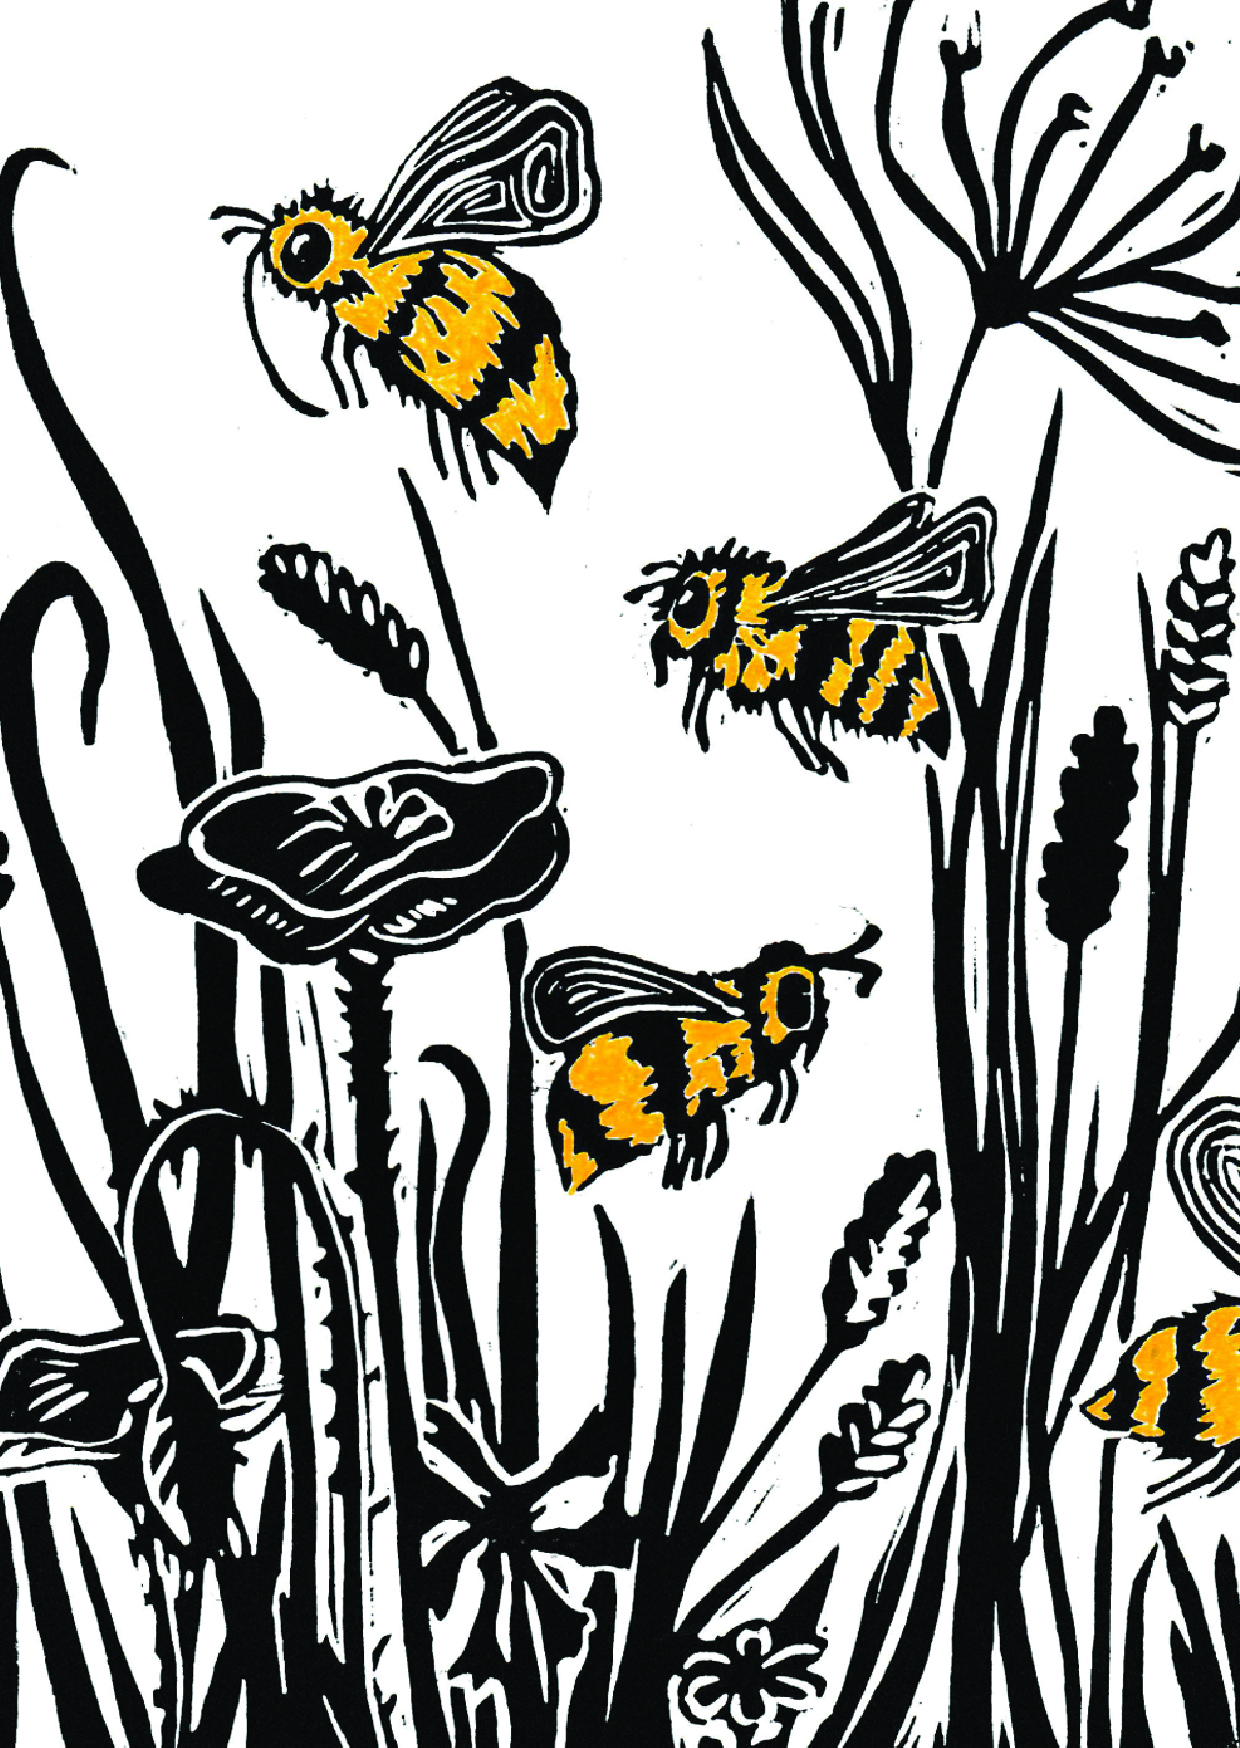 - Cornfield Bees,2016.Linoprint created for Filberts of Dorset as a greetings card design. Now available in their online store and in shops and galleries around the UK.